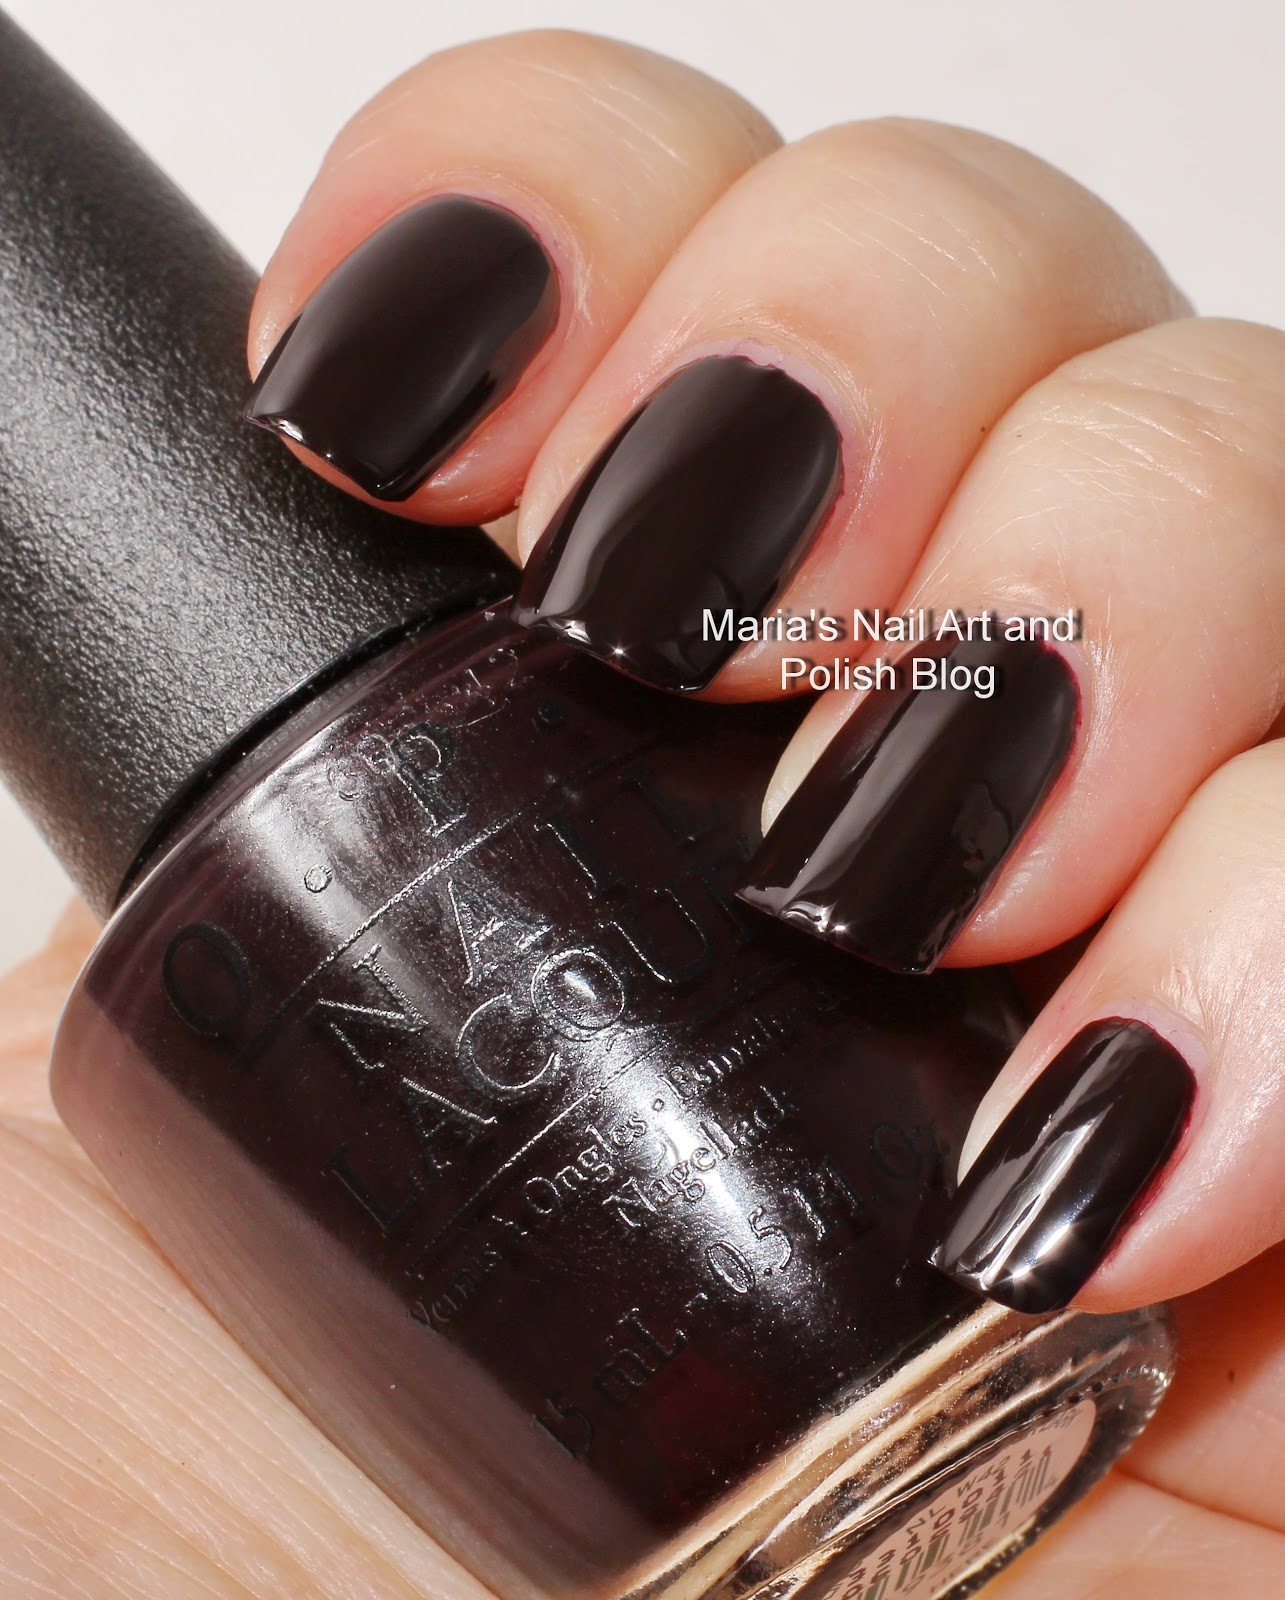 showreview after reviews photos product opi asp polishes itemid dark lpad park makeupalley lincoln